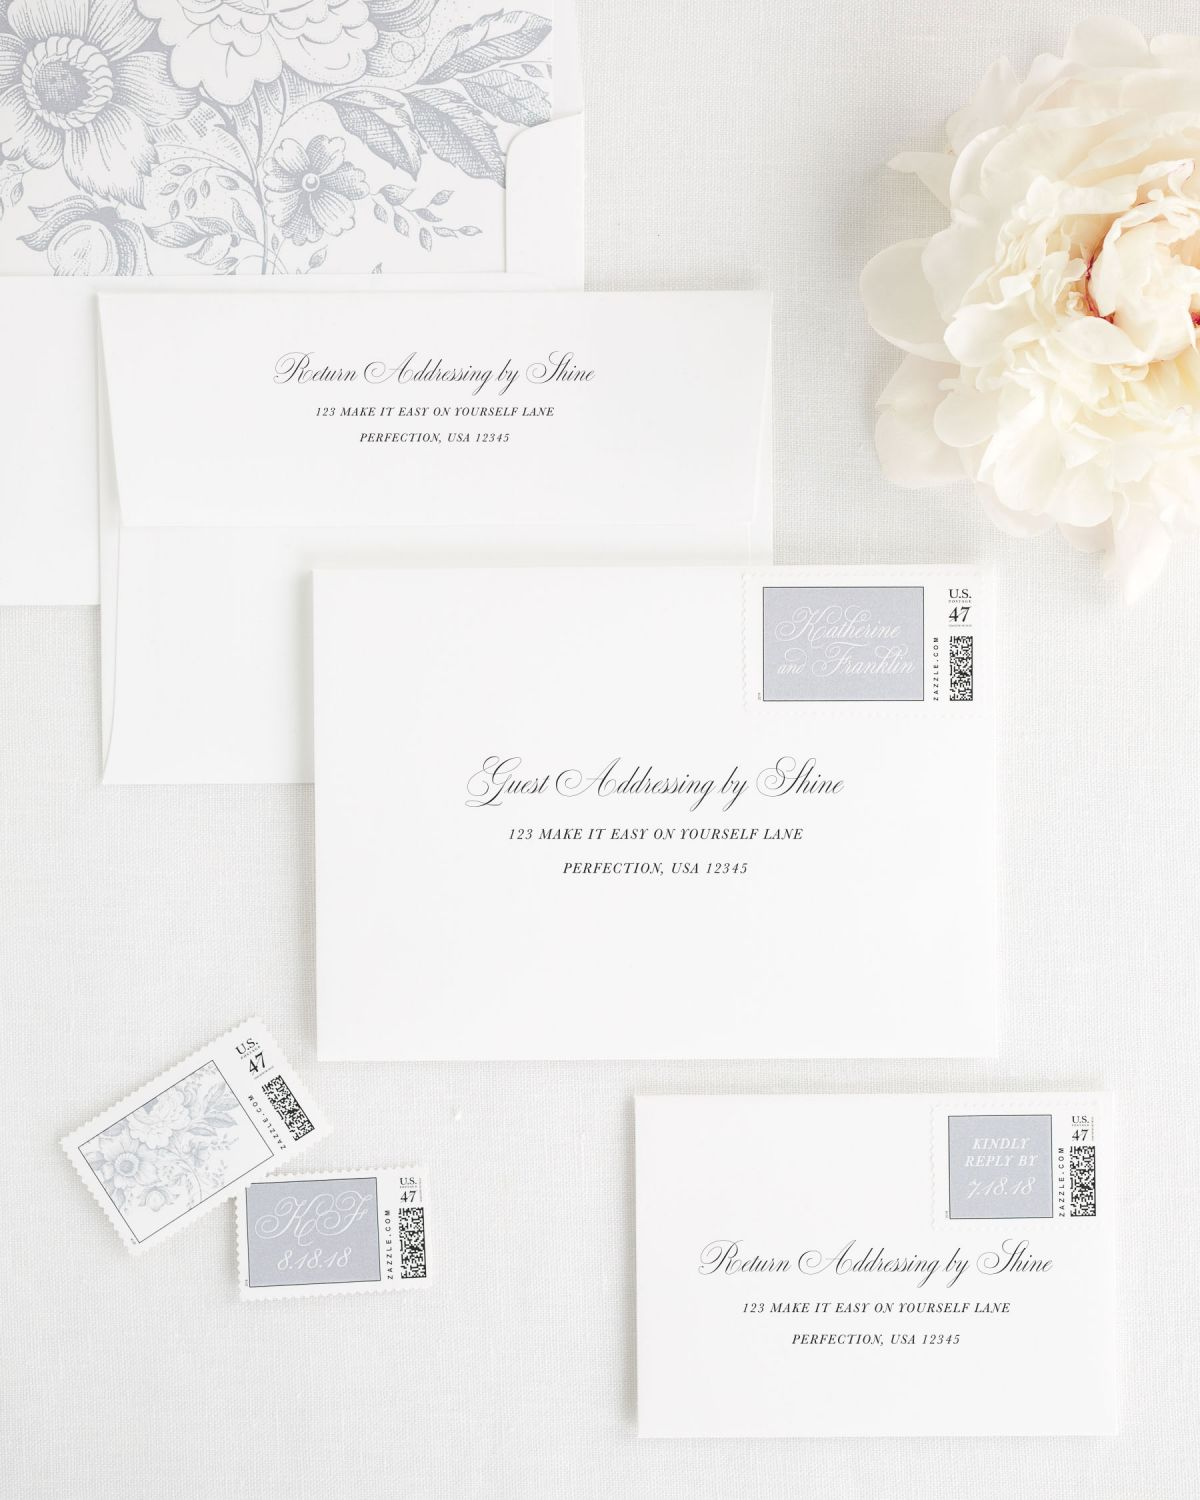 wedding envelopes with guest addressing and custom stamps in dove gray